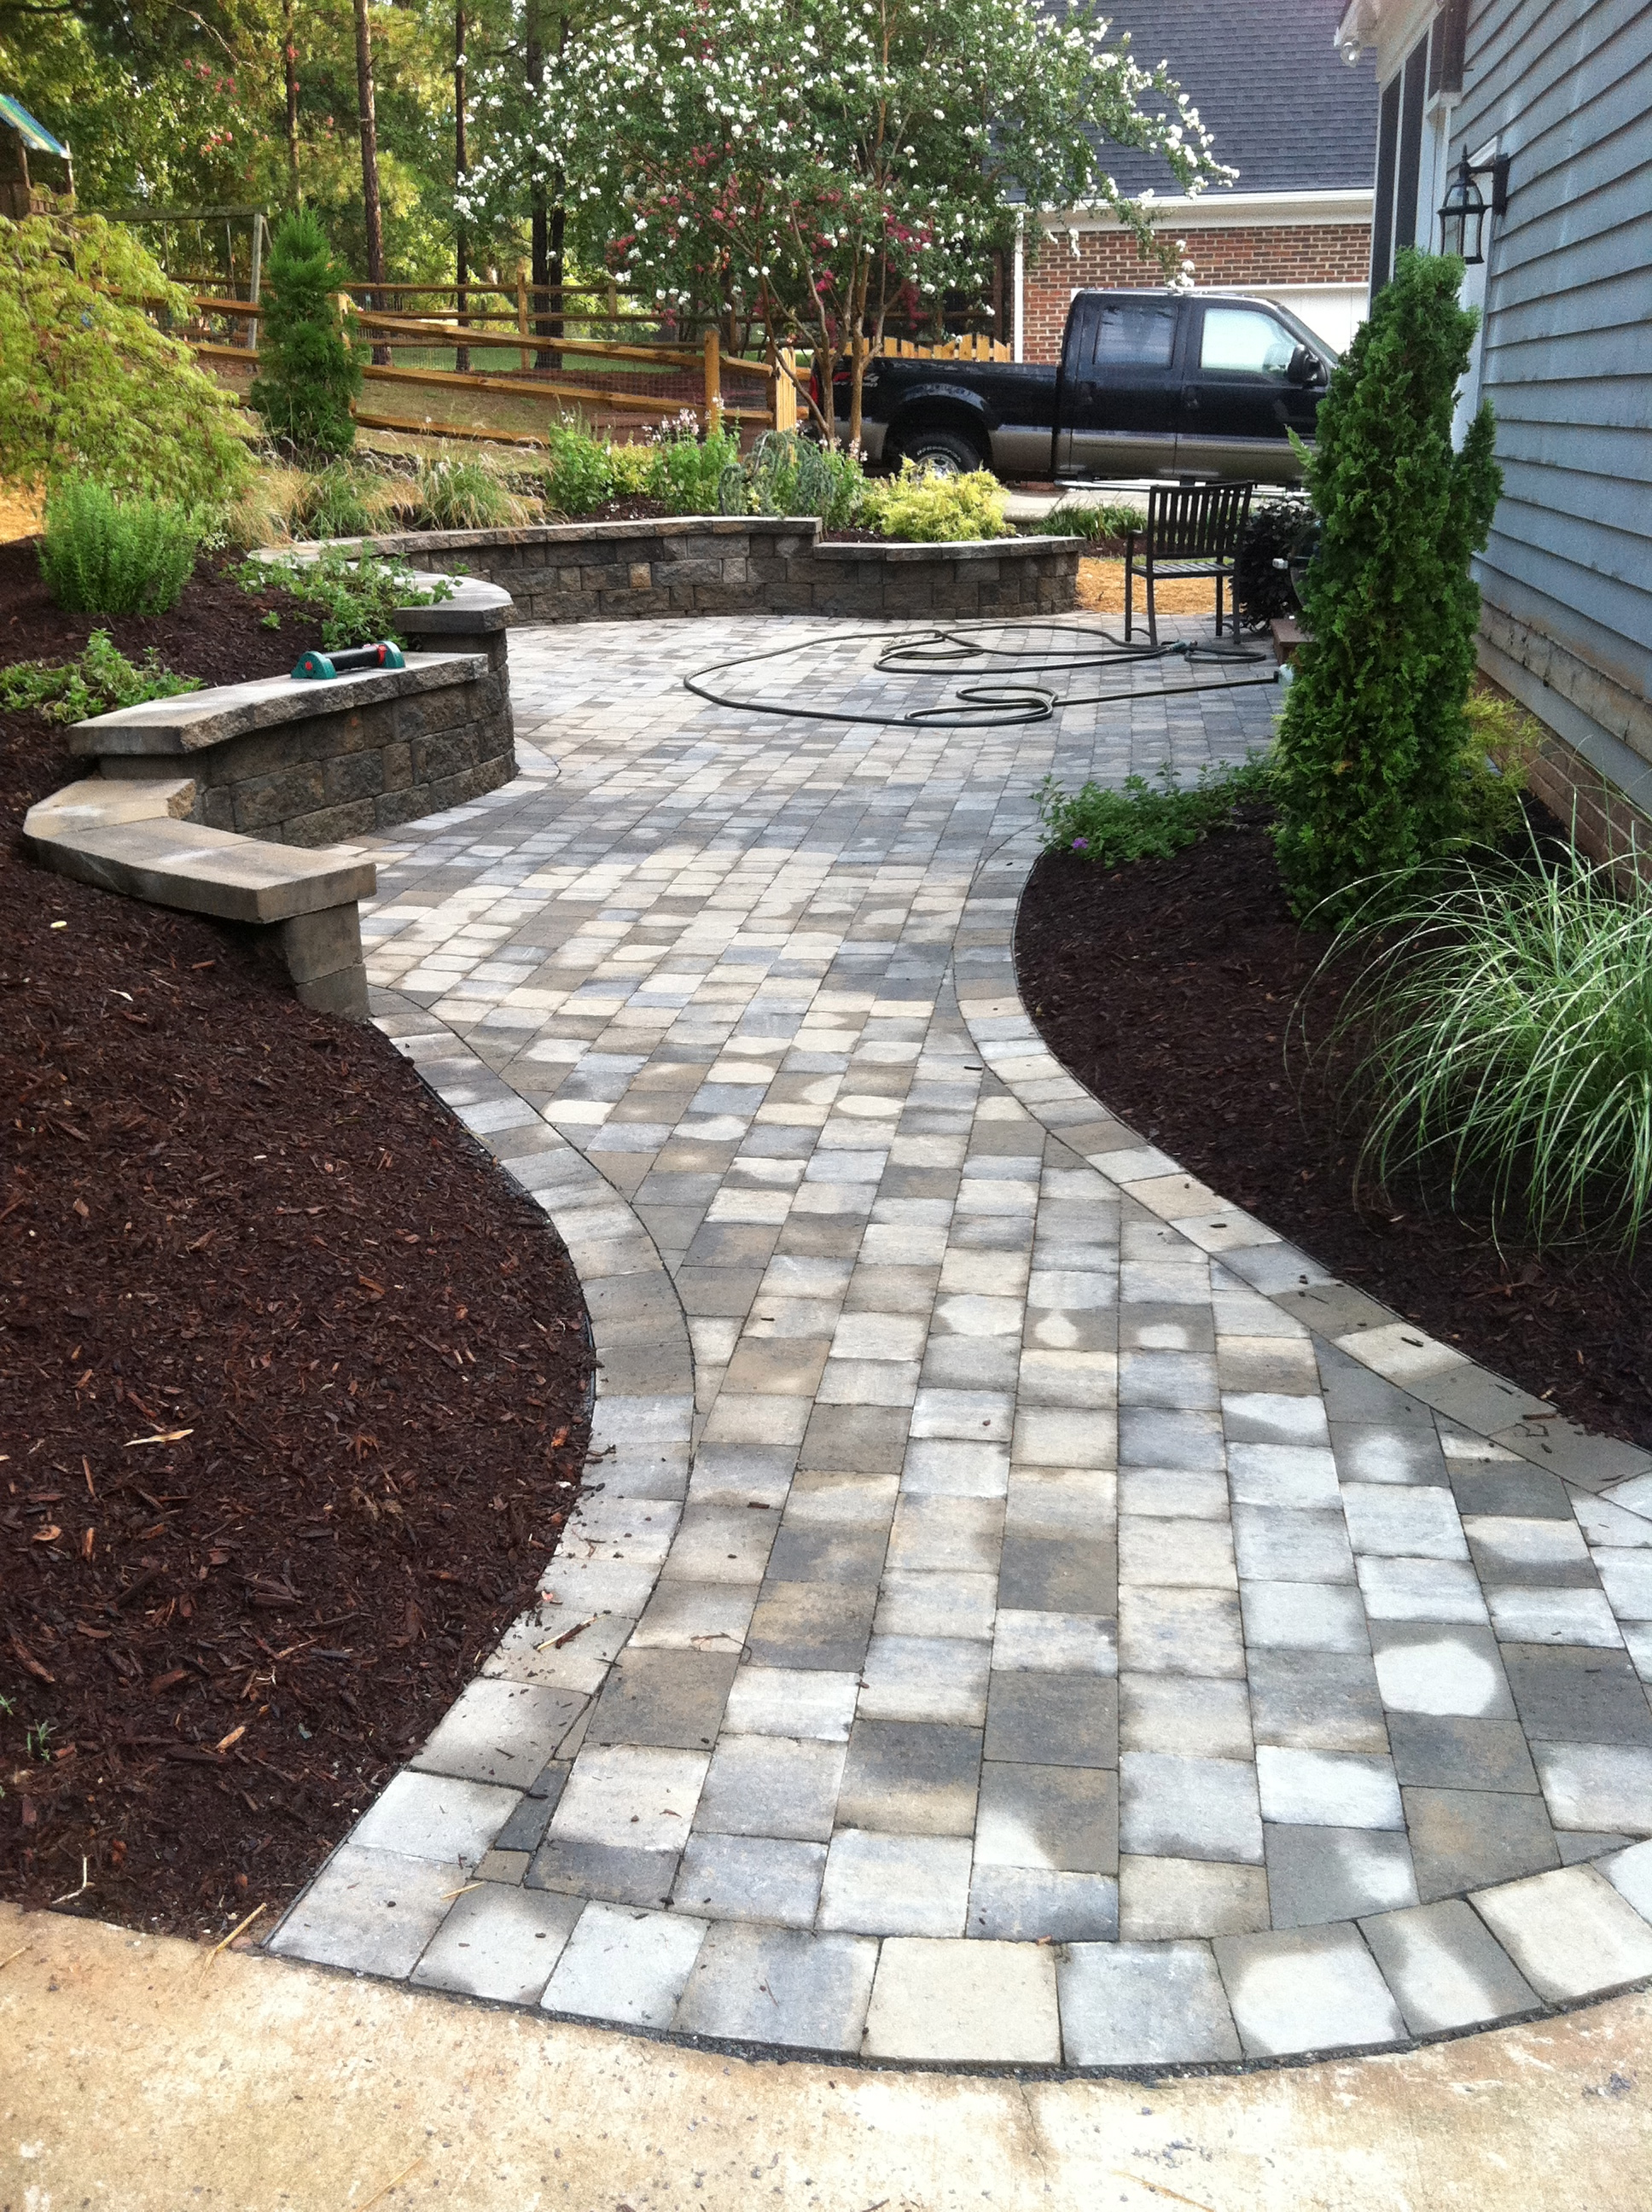 for patios defranco outdoor spaces lake ny with brant techo aberdeen pavers can news soldier index course bloc living patio archives create paver docks